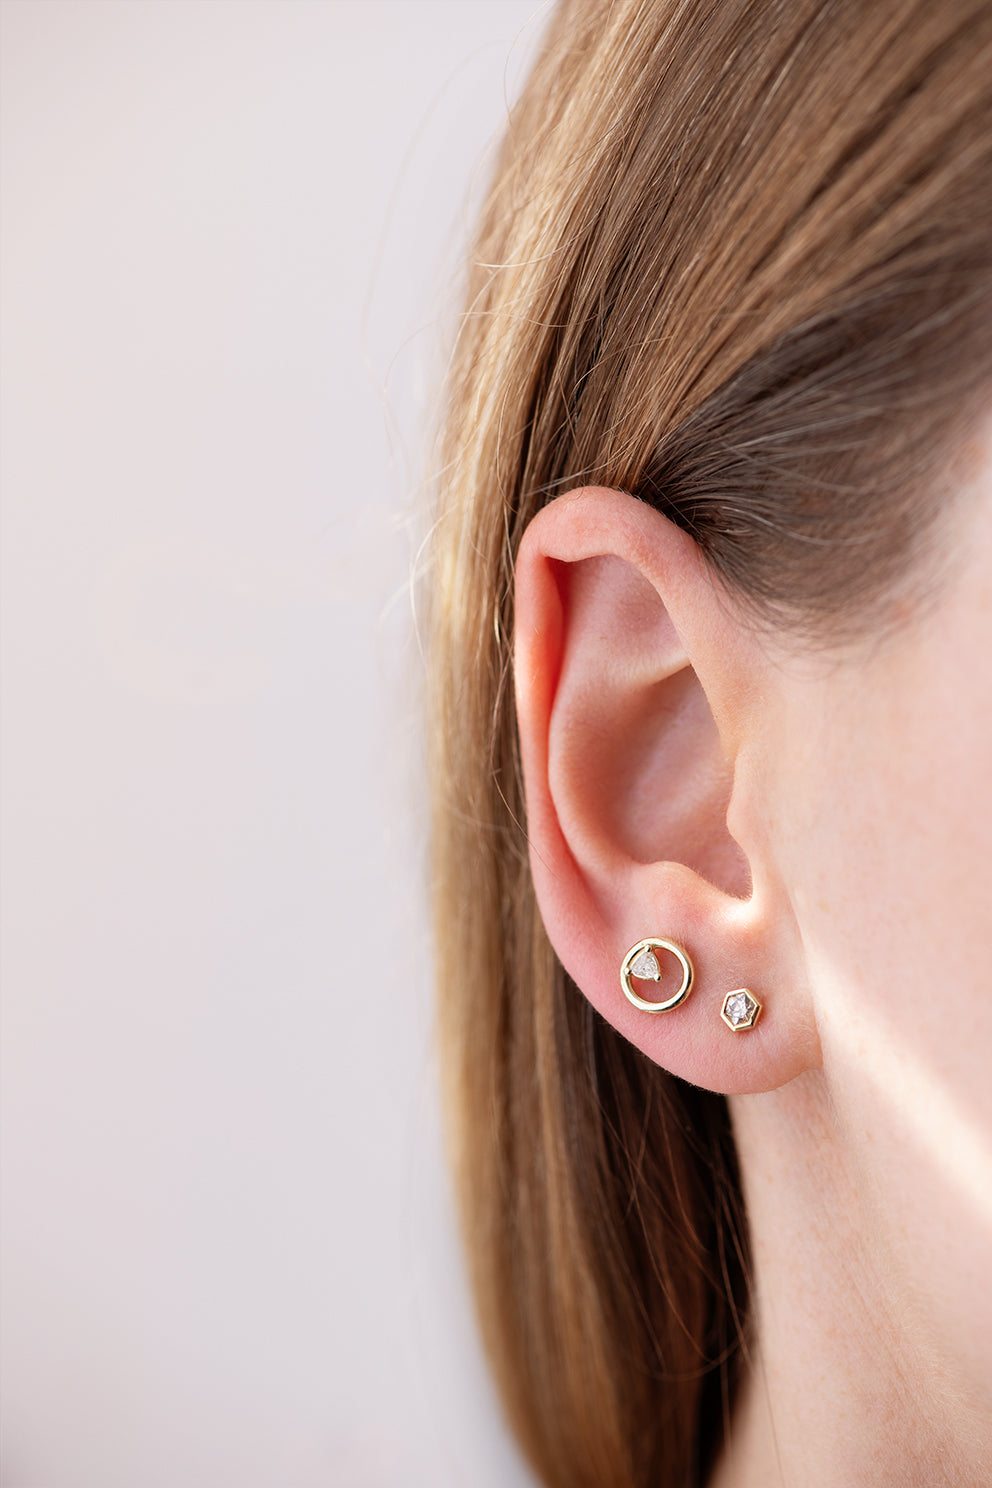 Hexagon Diamond Earrings on Ear